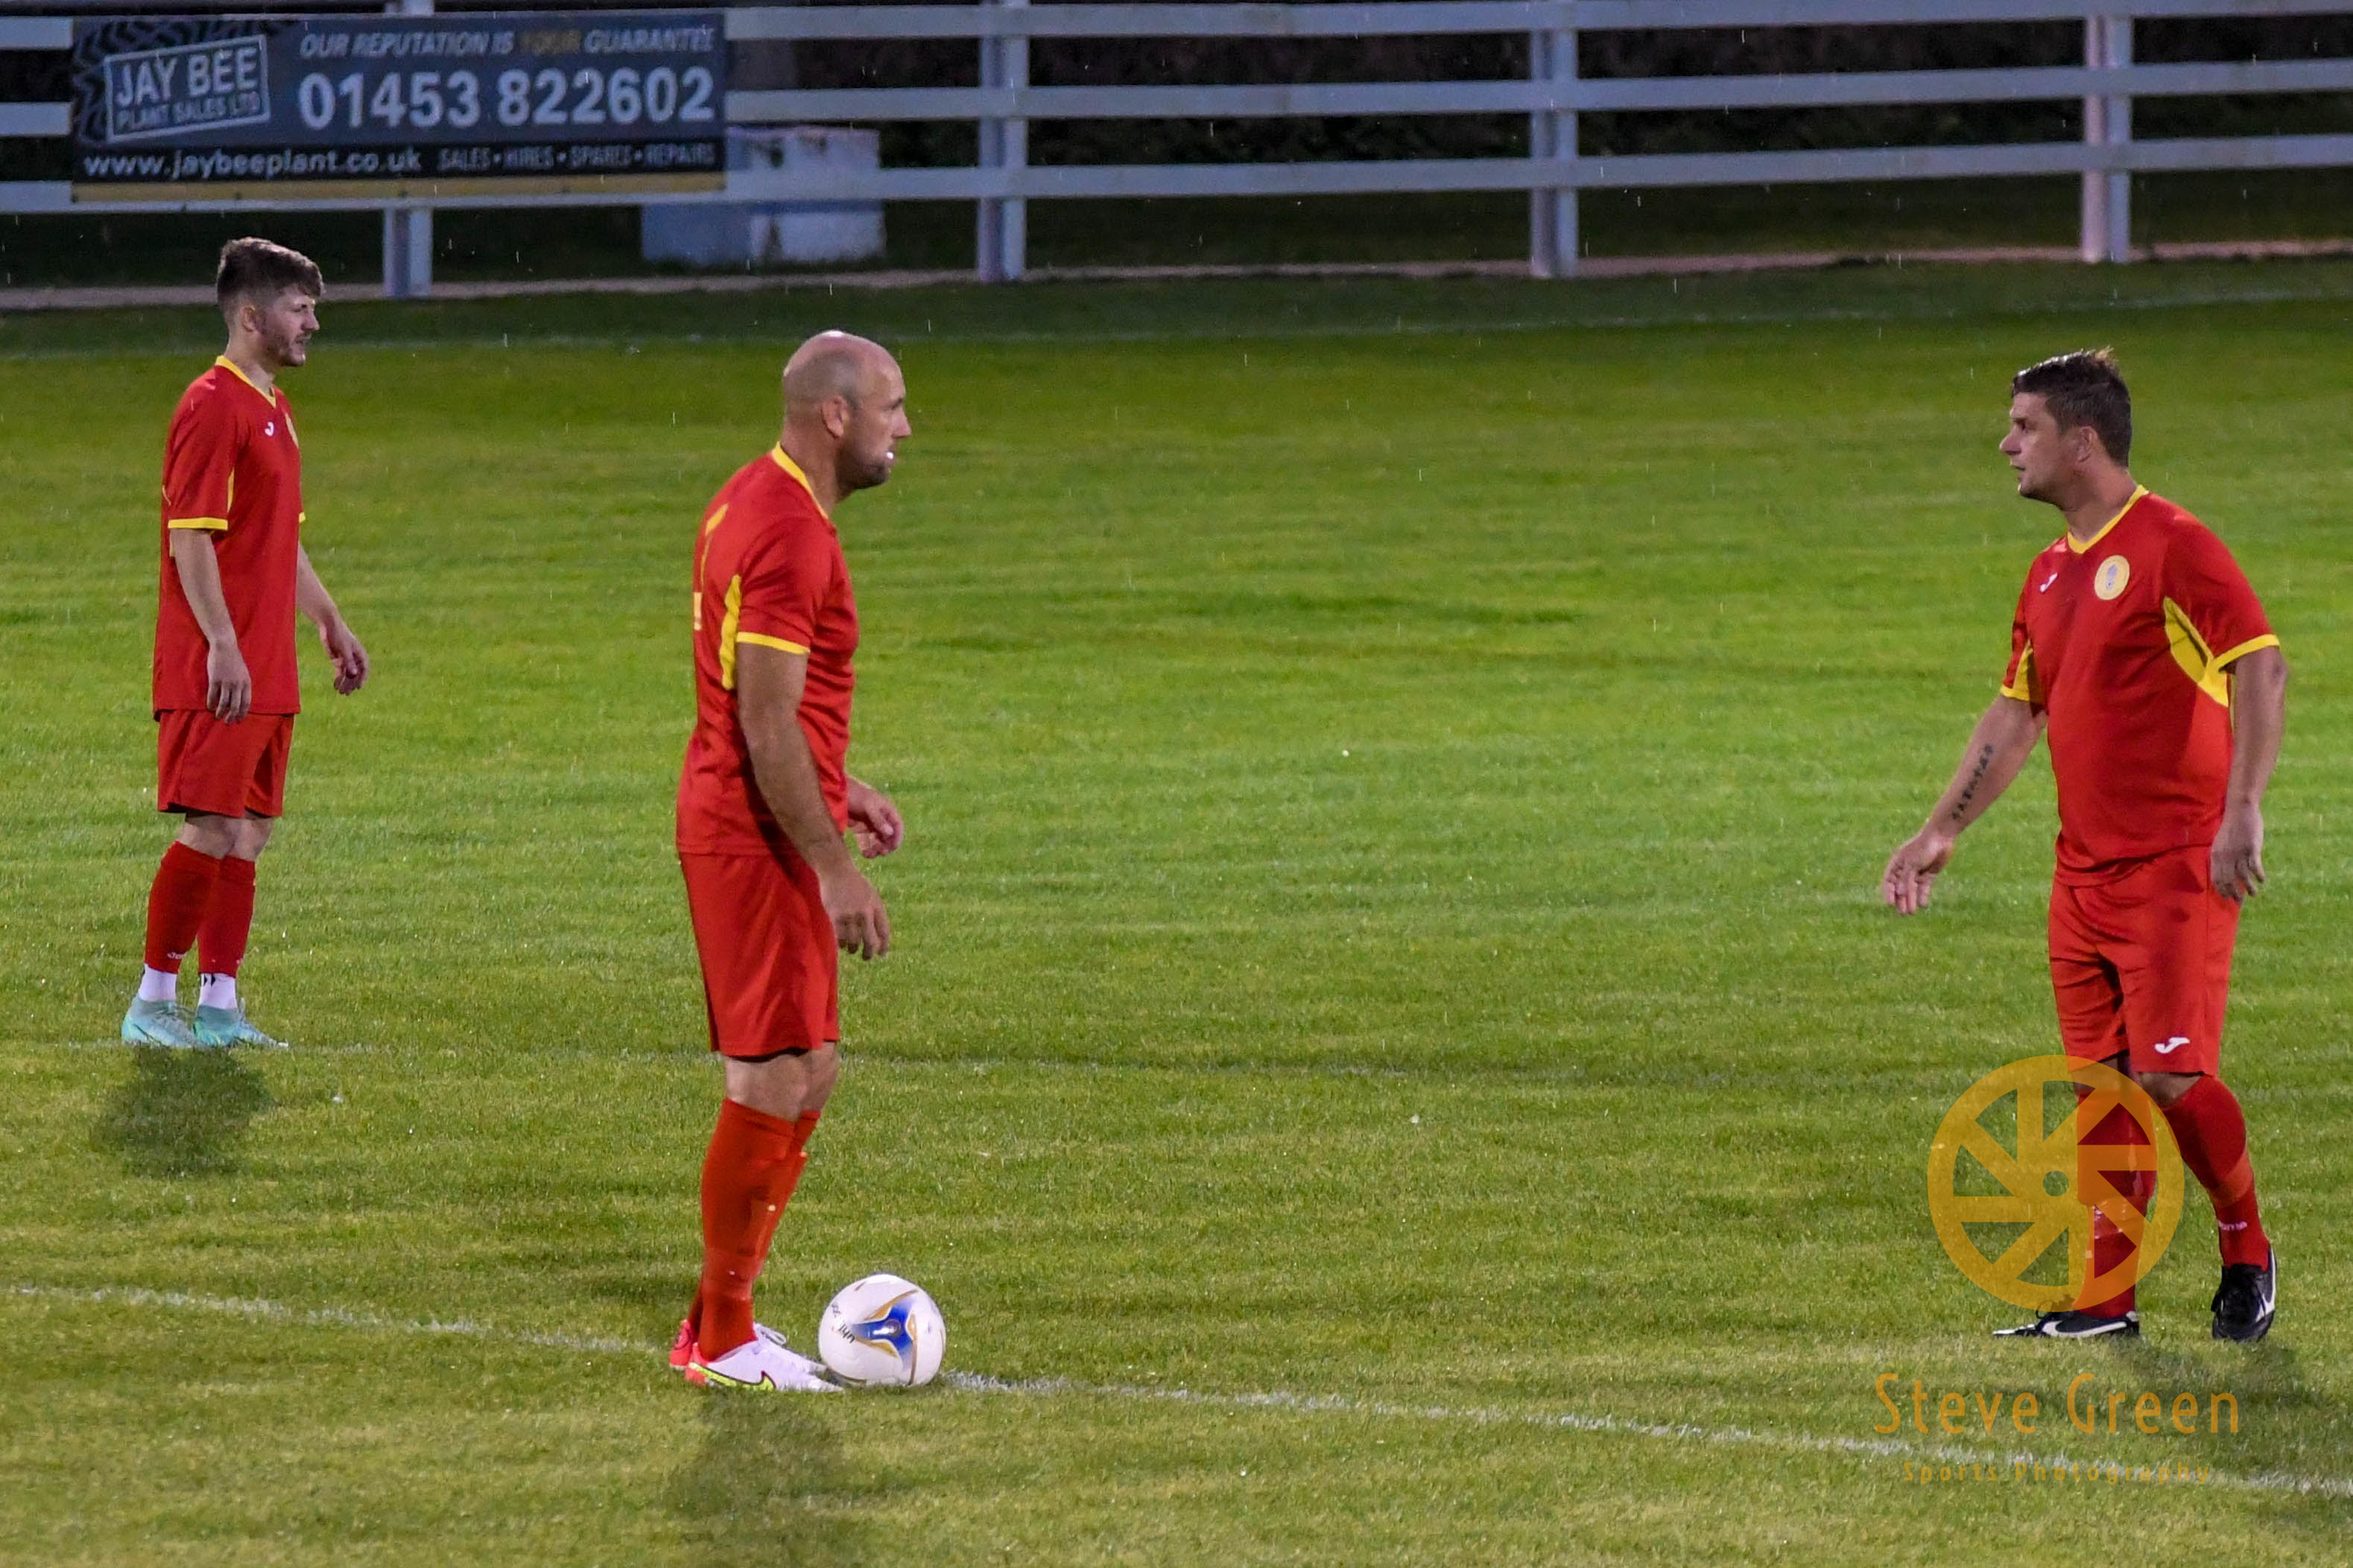 Photos from Royal Wootton Bassett Town's 2-1 away defeat to Brimscombe (Credit: Steve Green)